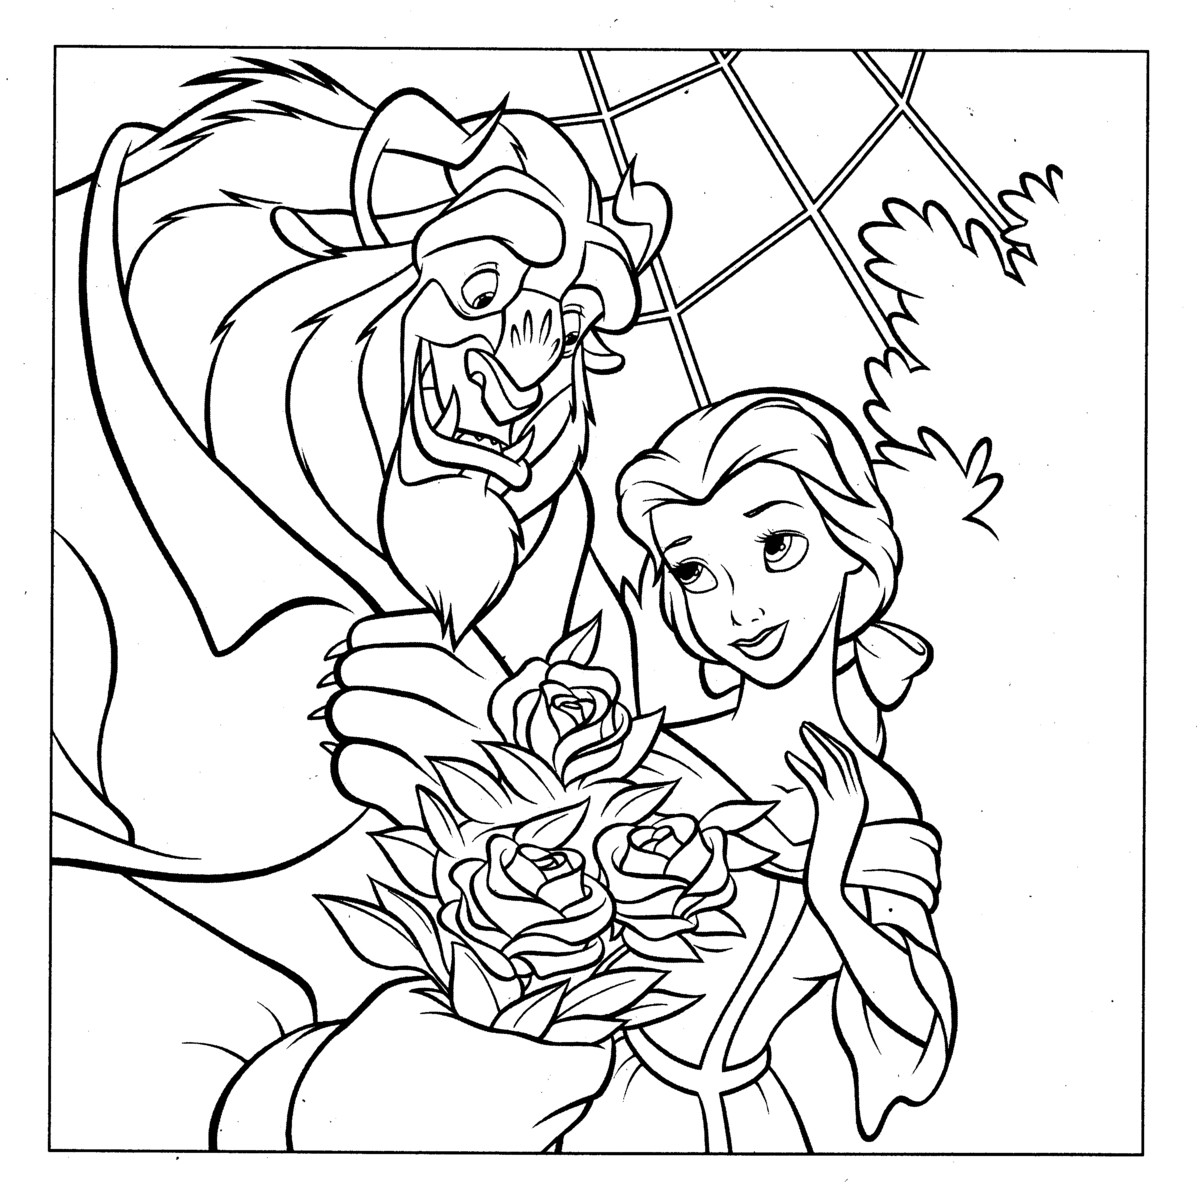 Princess Belle And The Beast Free Printable Coloring Pages For